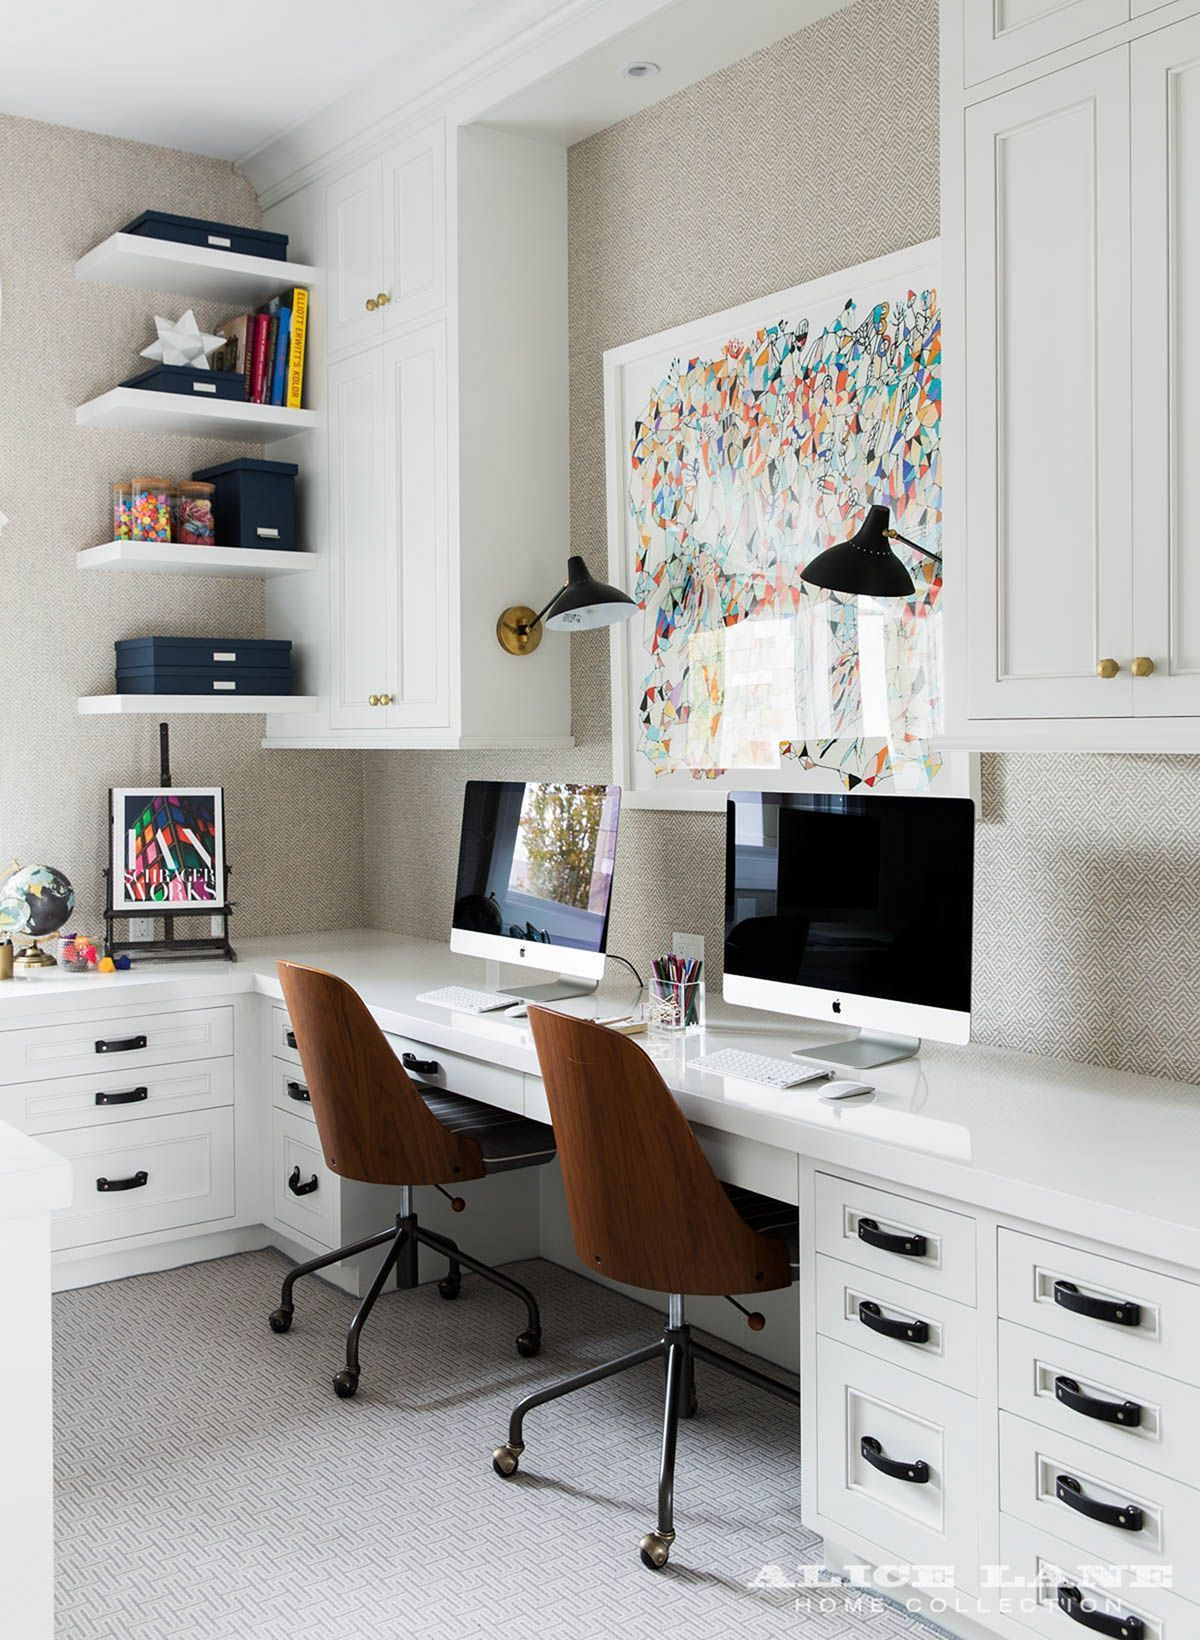 Dens libraries offices  shaped home office design photos ideas and inspiration amazing gallery of interior decorating also most popular alice lane study rh pinterest